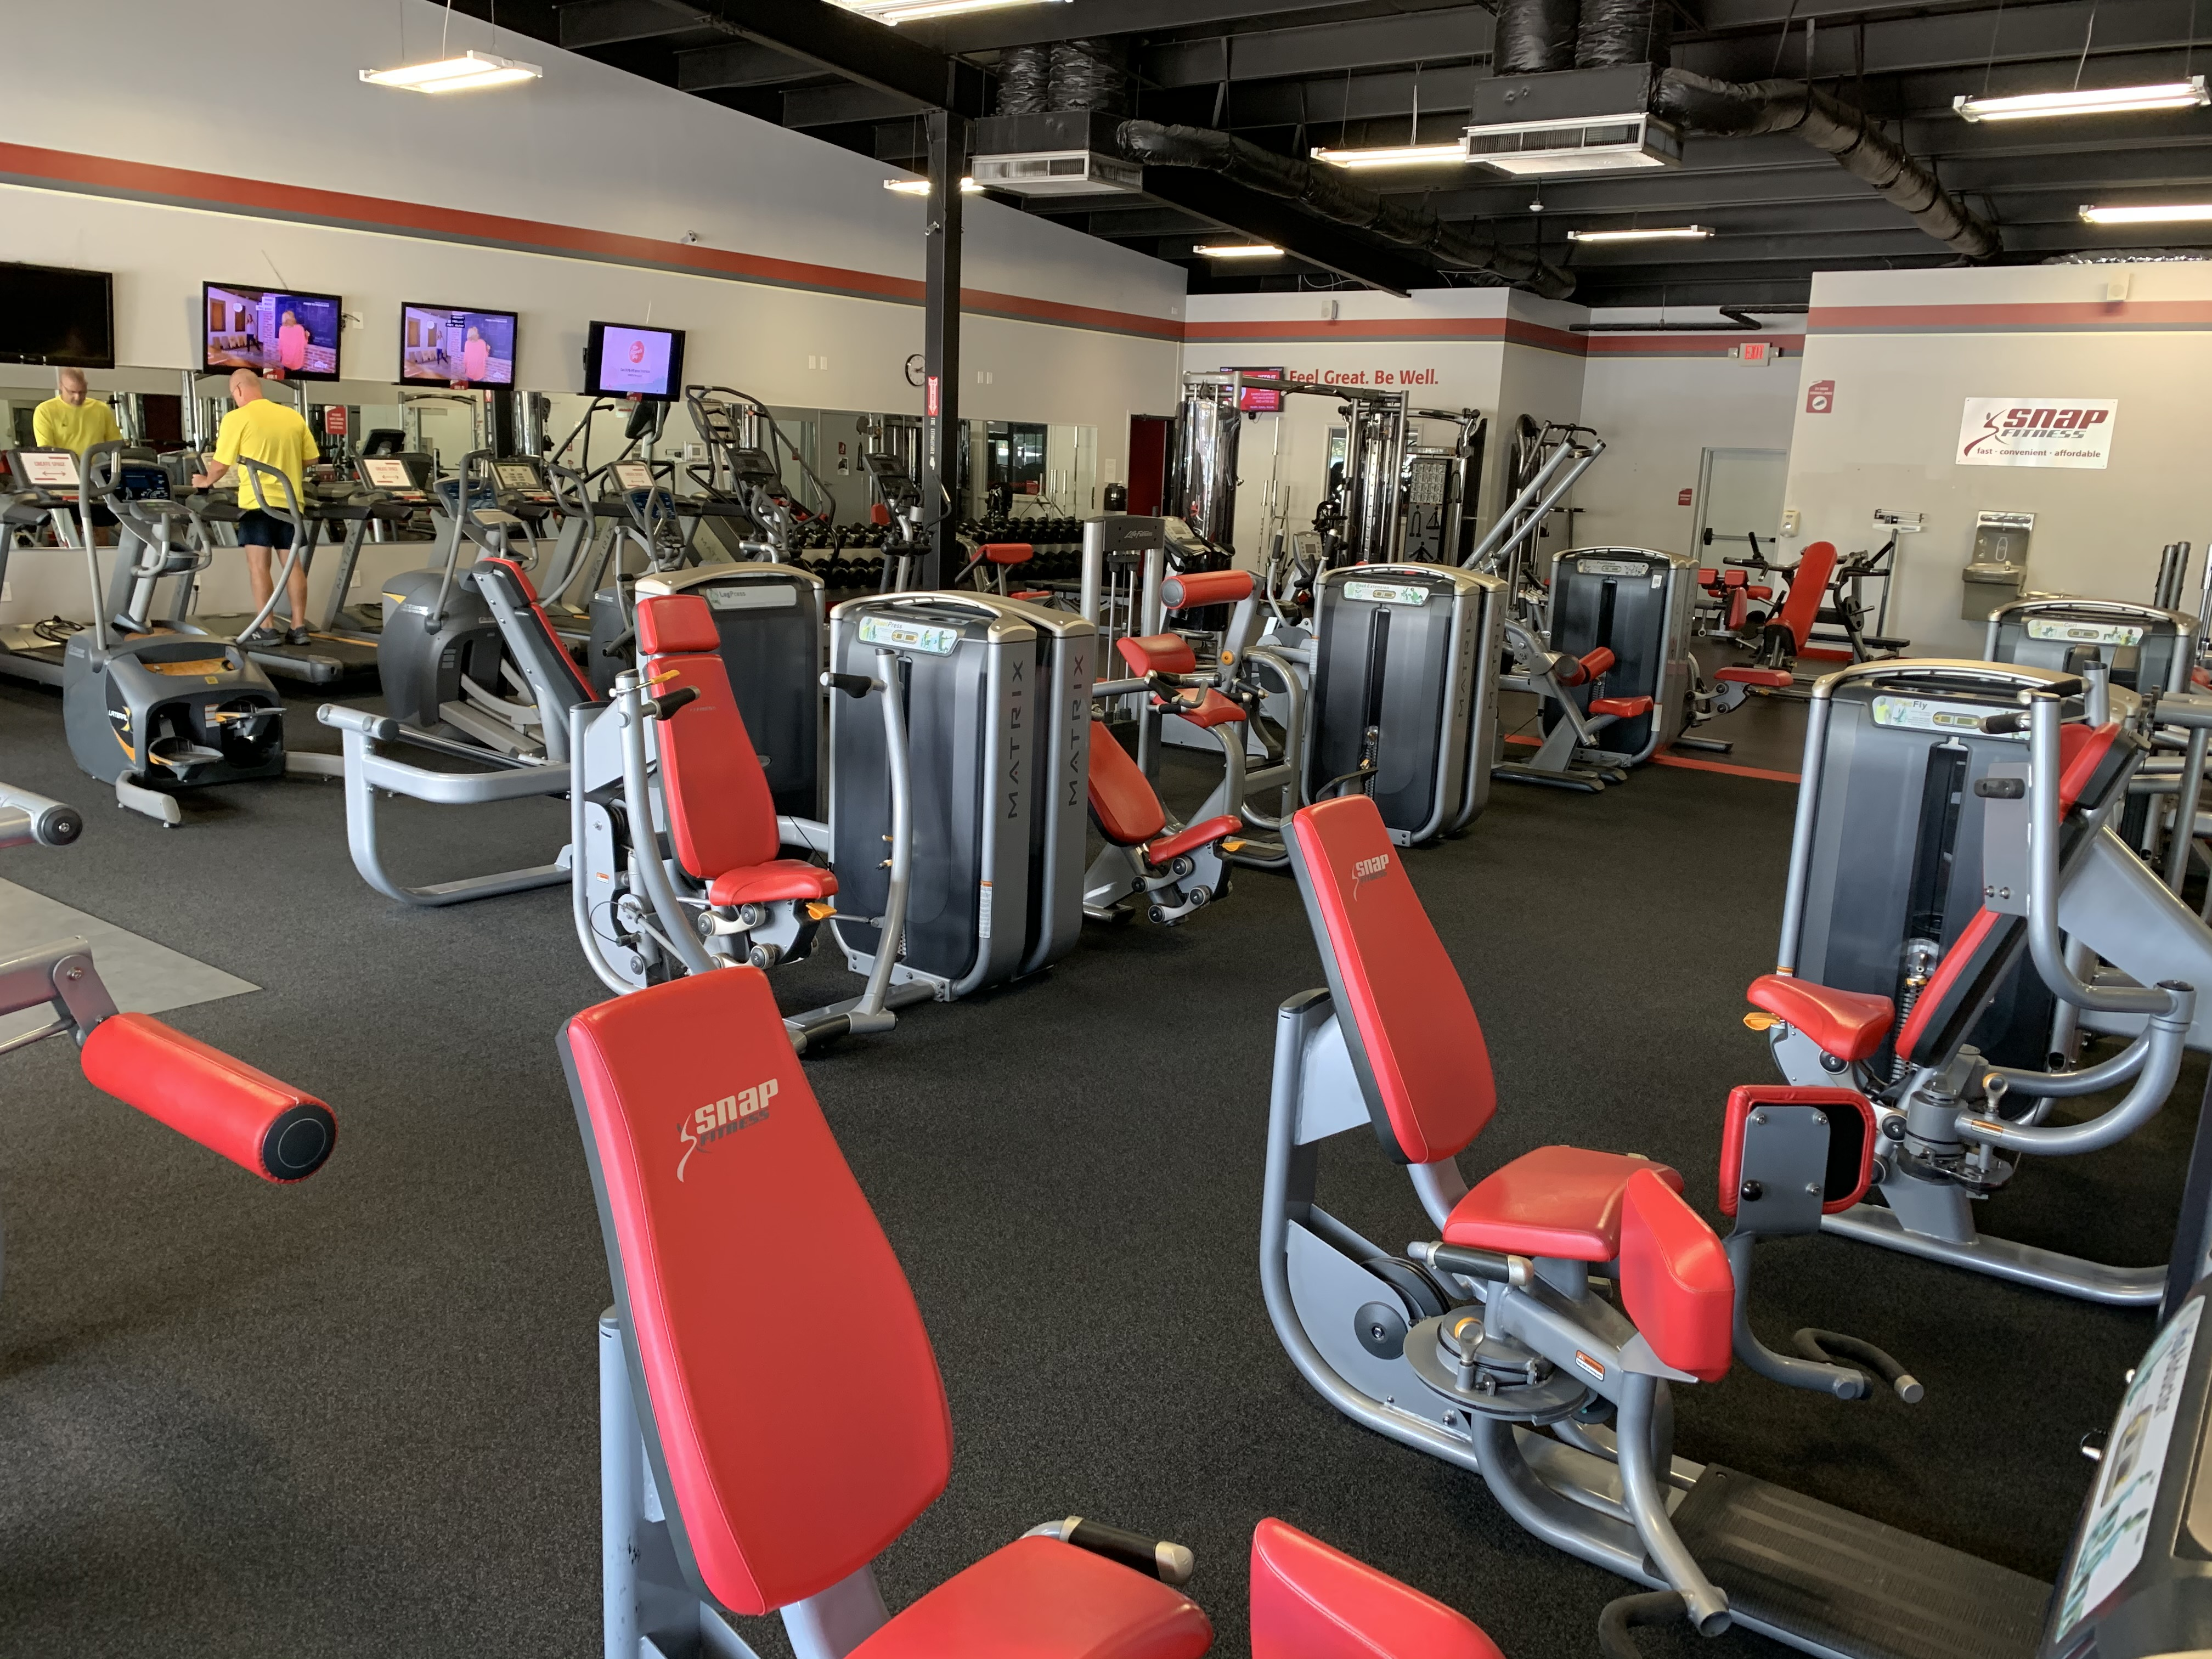 Gym In New Caney Tx 20185 Hwy 59 Planet Fitness